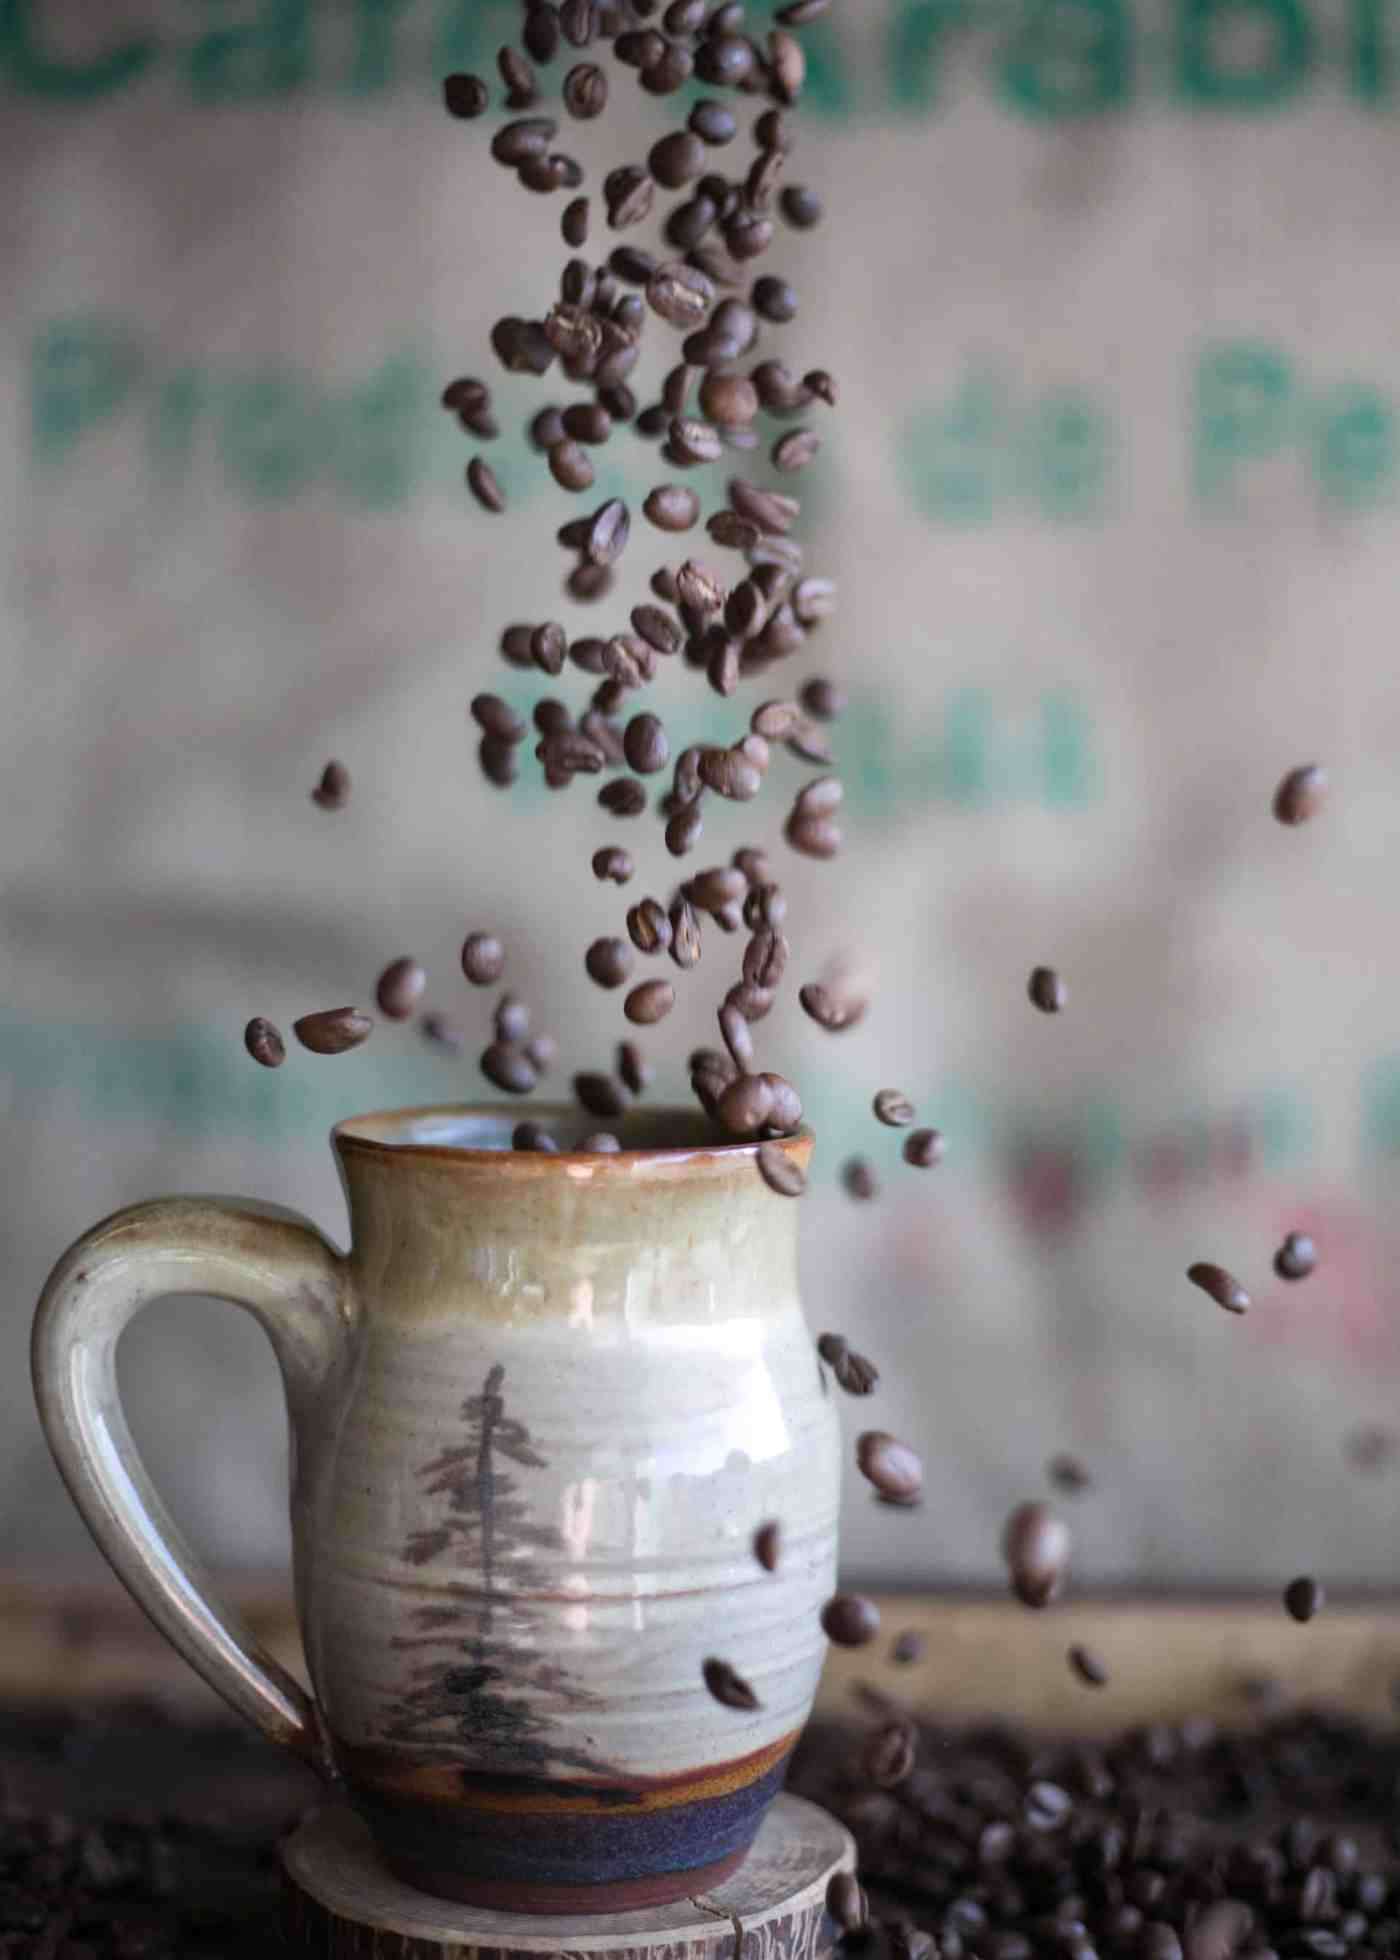 Coffee beans falling into coffee cup